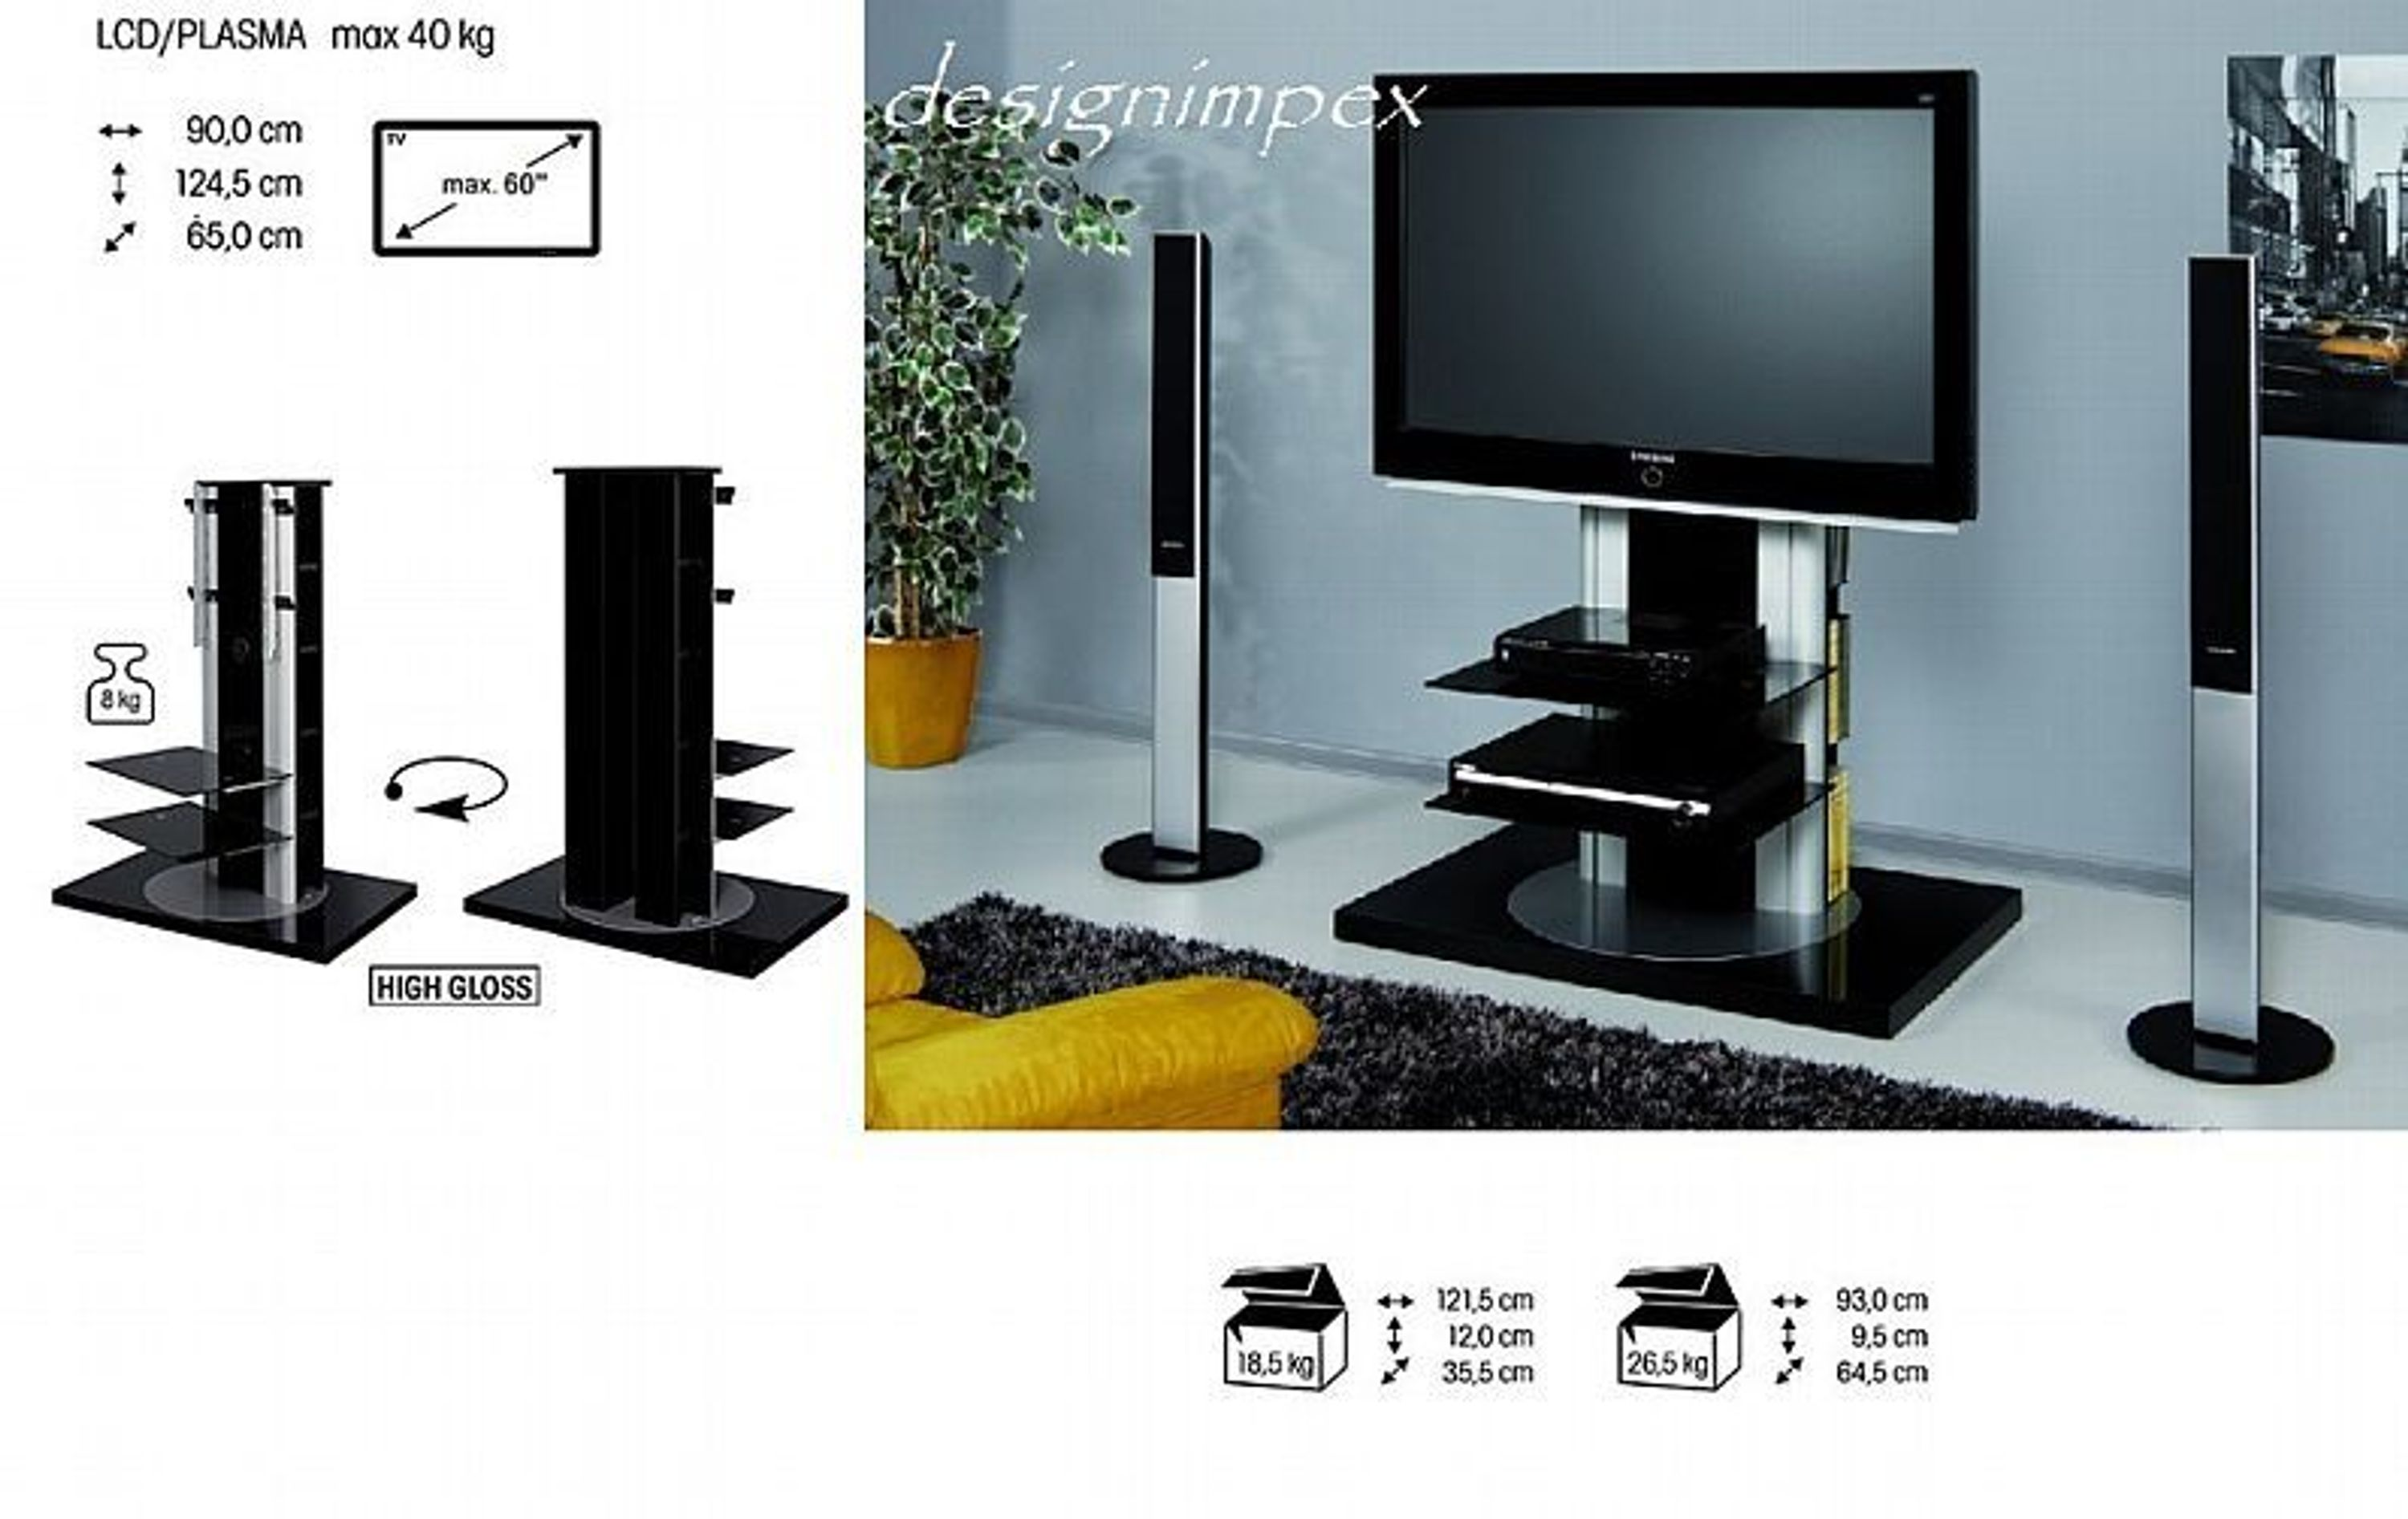 fernsehtisch h 777 schwarz hochglanz 360 drehbar tv rack lcd inkl tv halterung kaufen bei. Black Bedroom Furniture Sets. Home Design Ideas